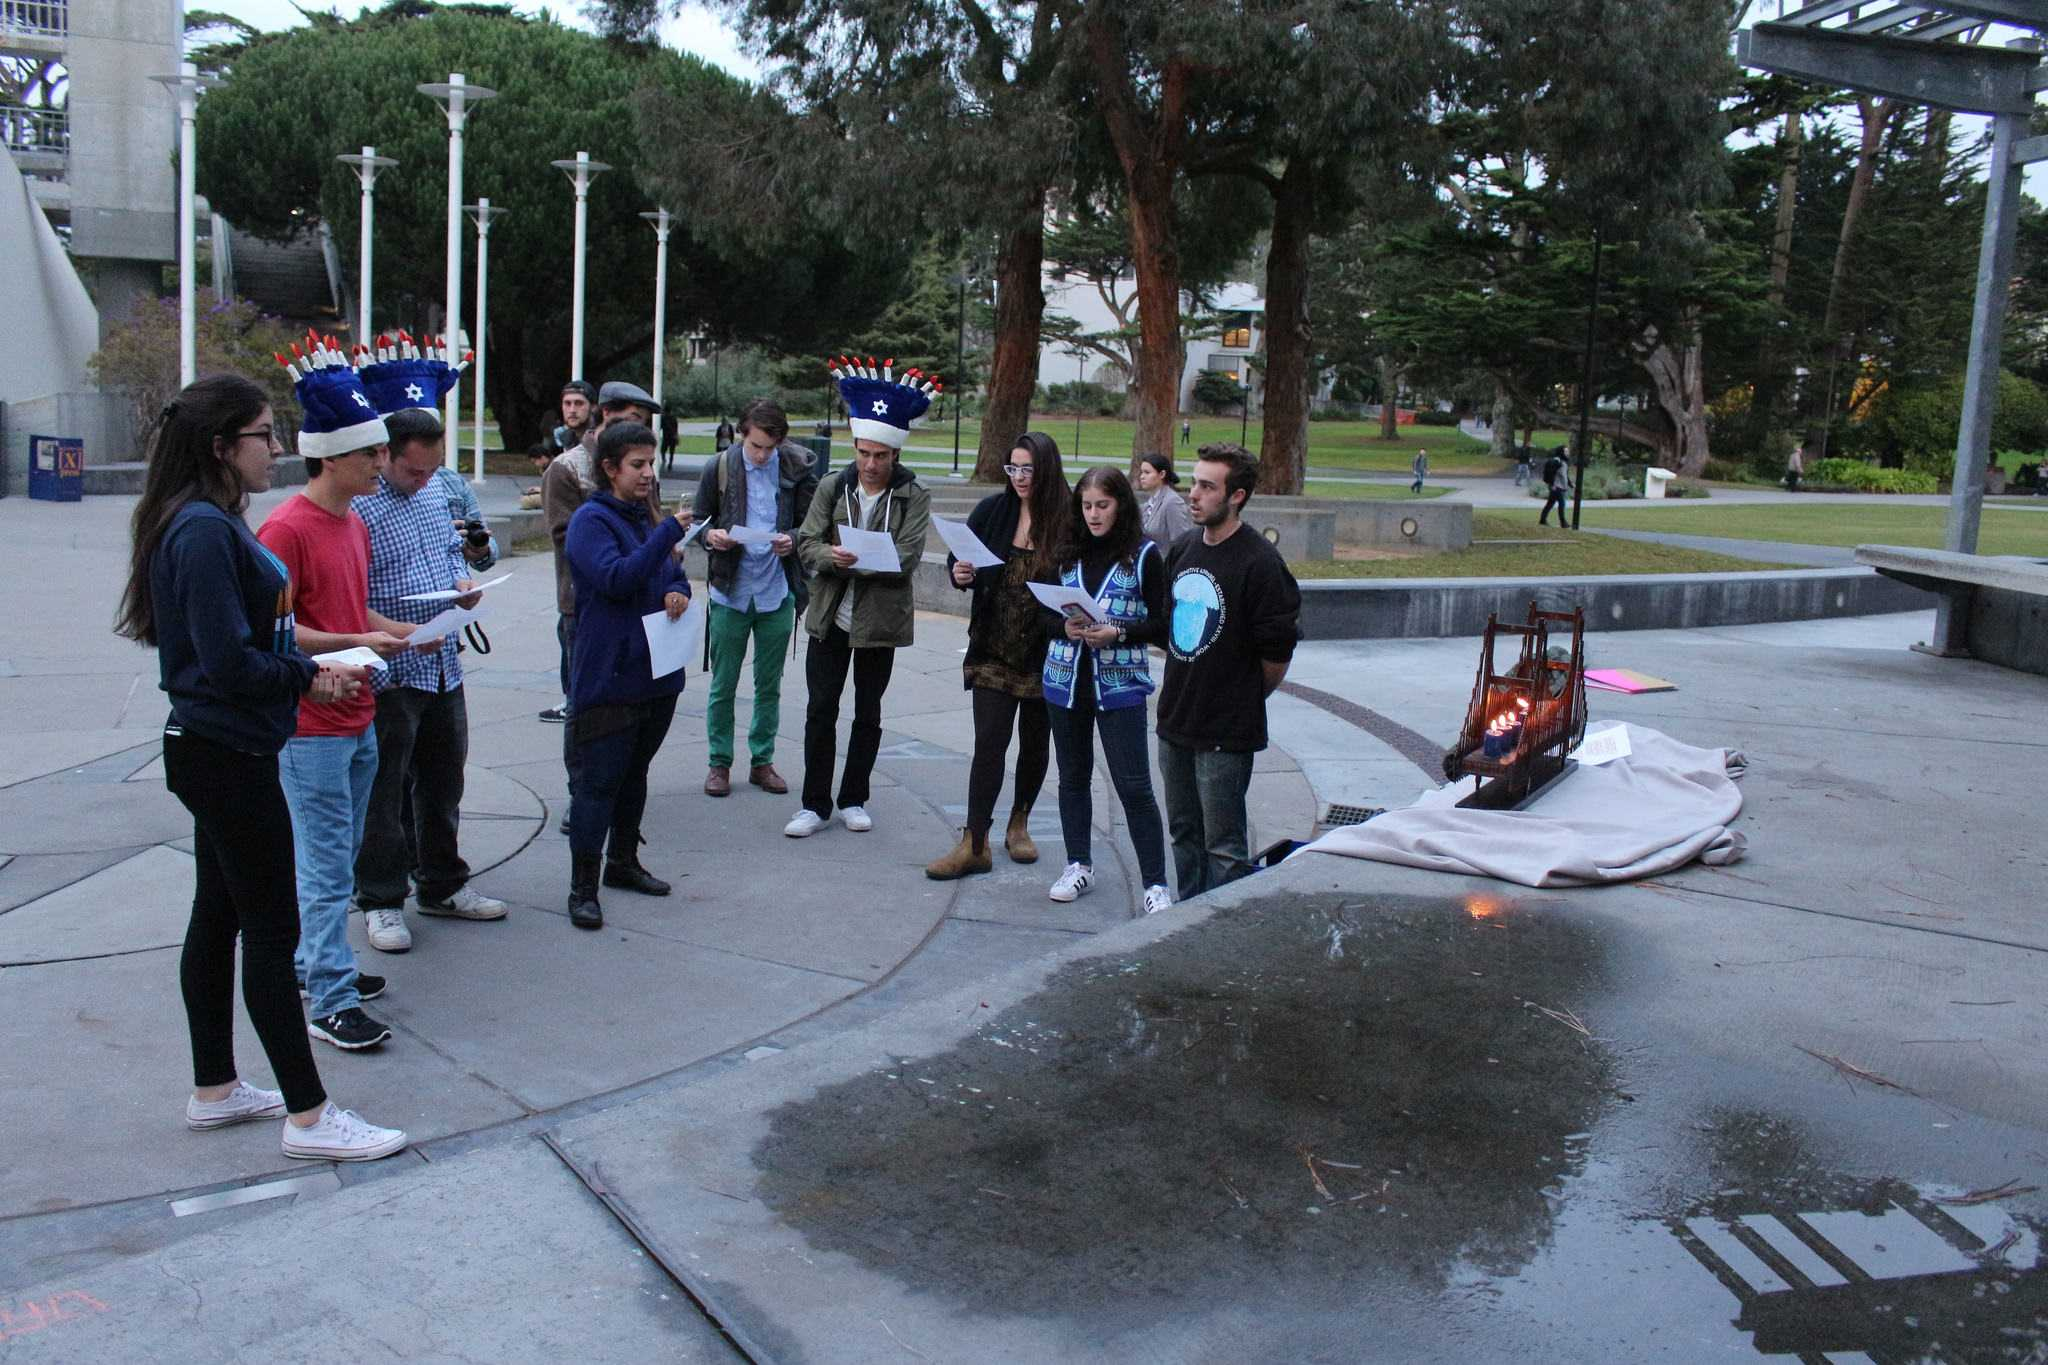 SF Hillel celebrates the second day of Hanukkah in Malcolm X Plaza Tuesday, Dec 8. (James Chan/Xpress)